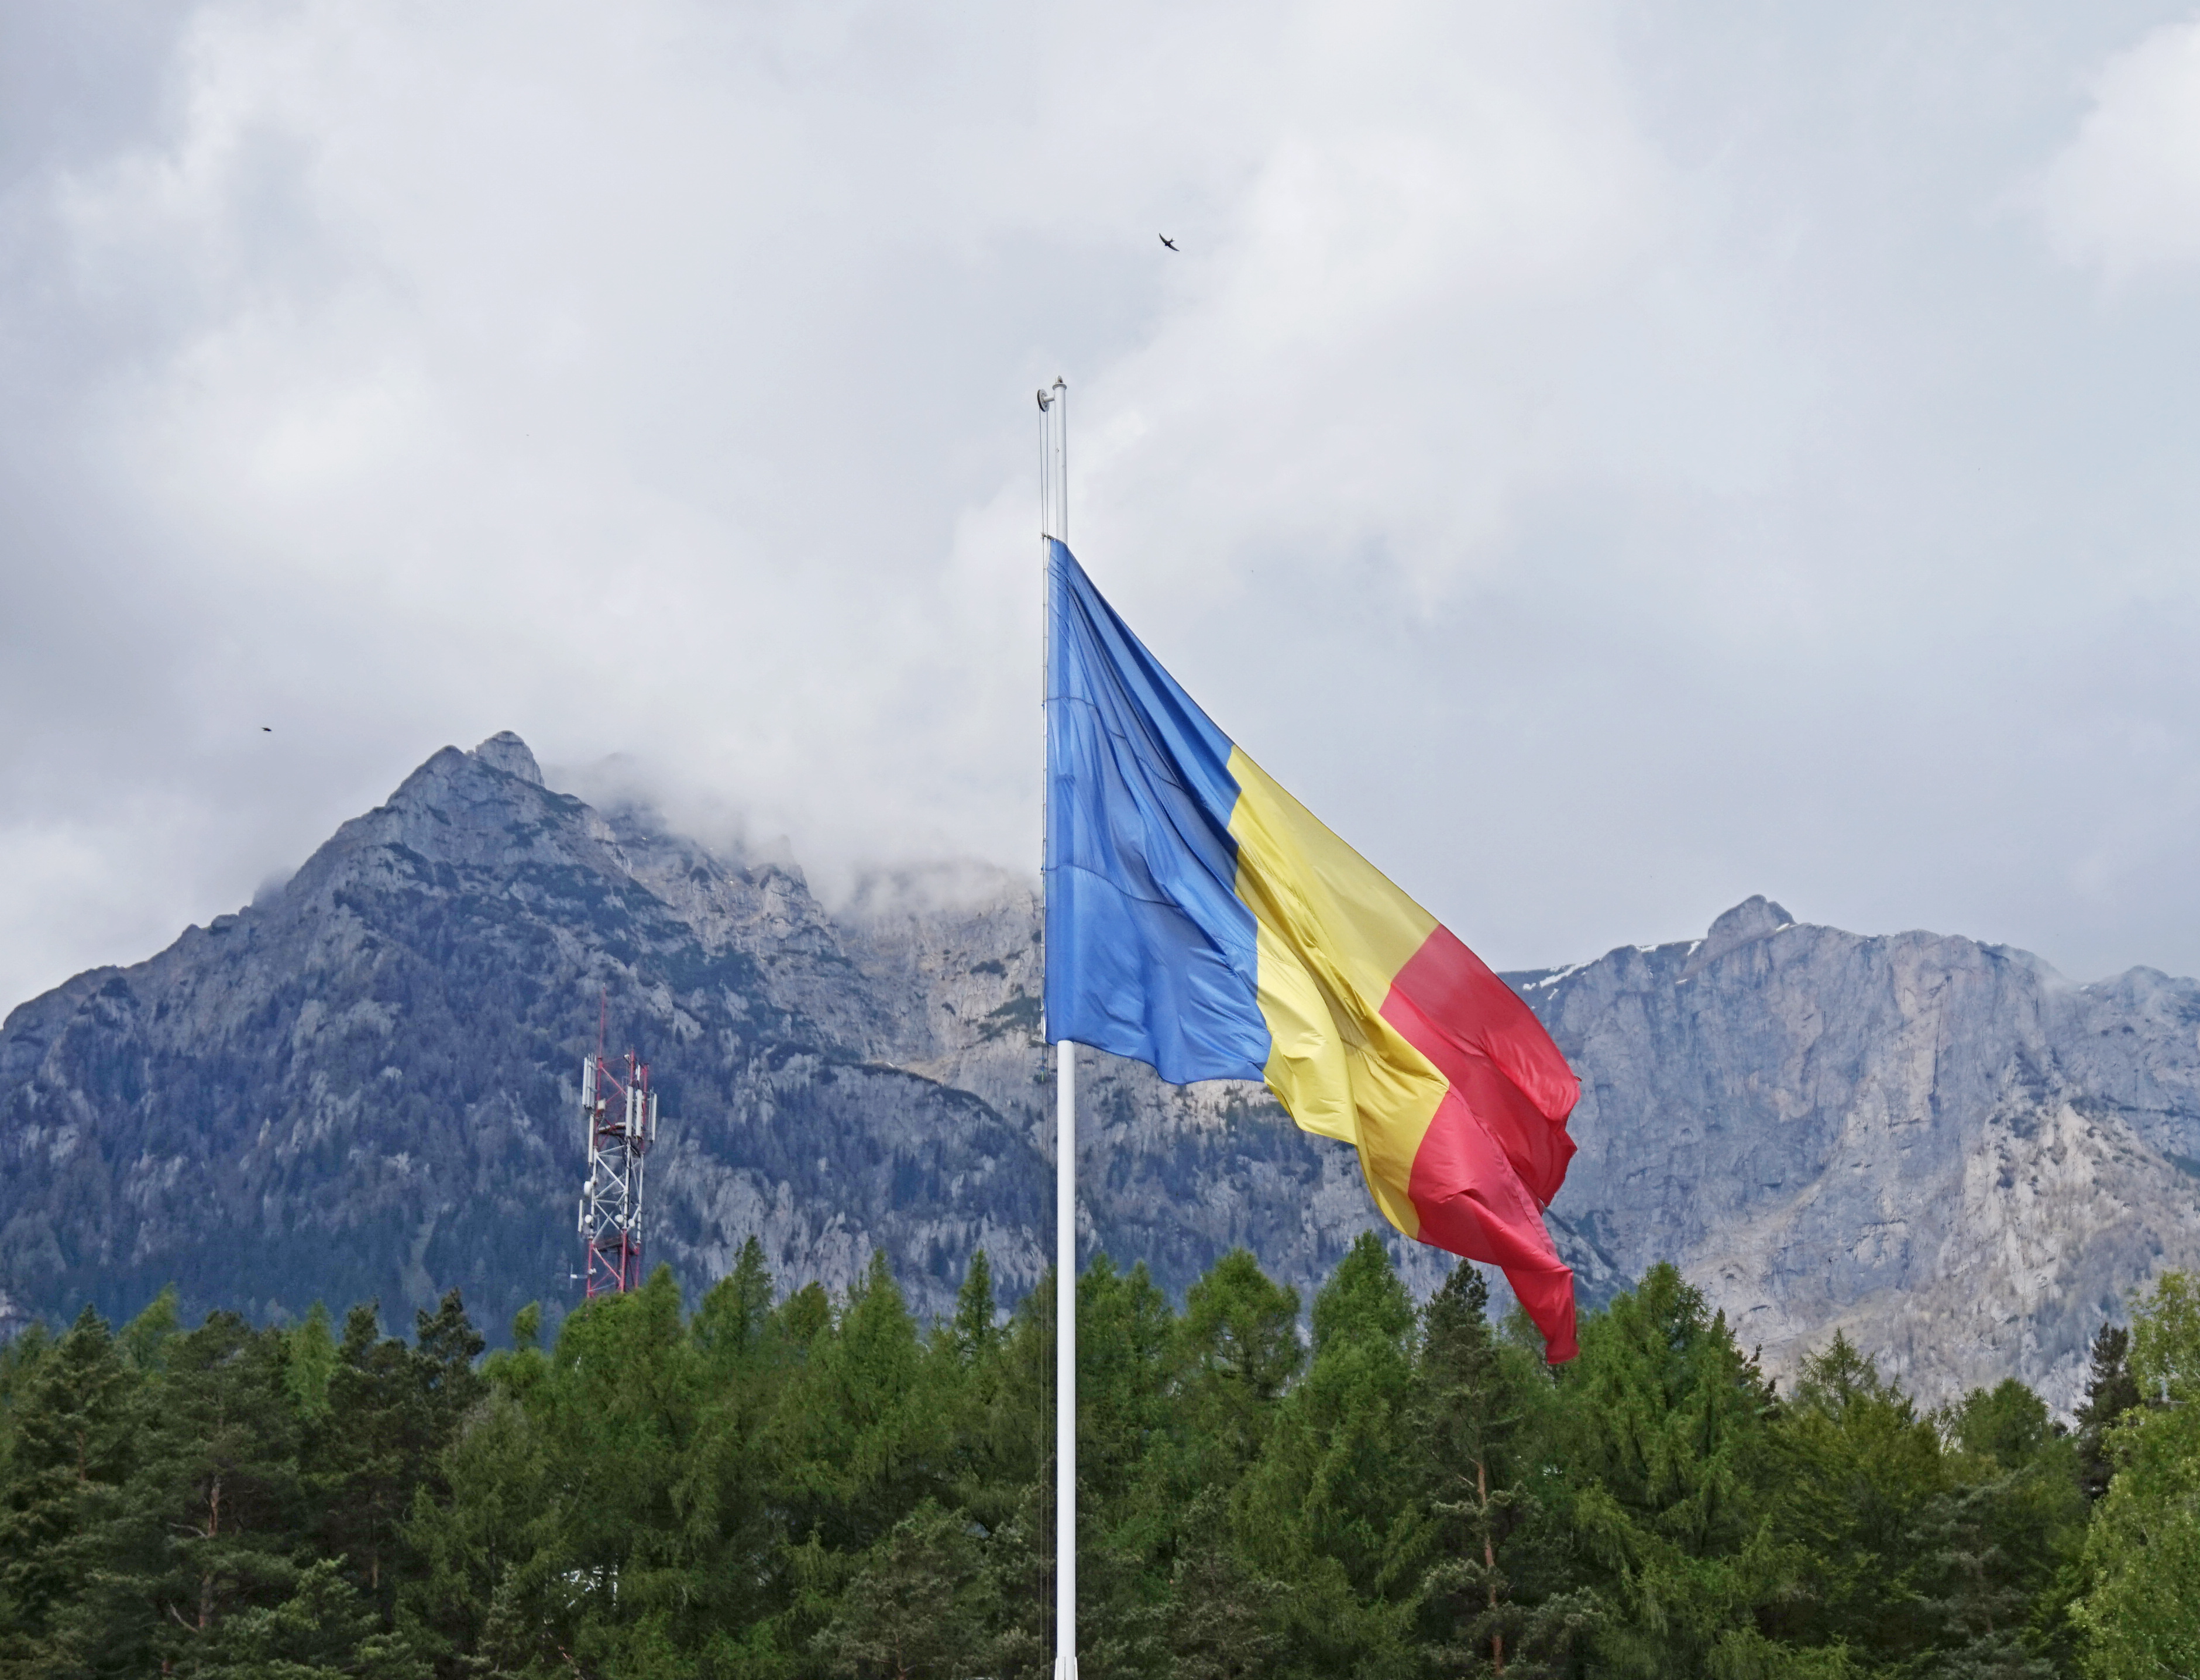 FileRomanian flag and mountainjpg  Wikimedia Commons